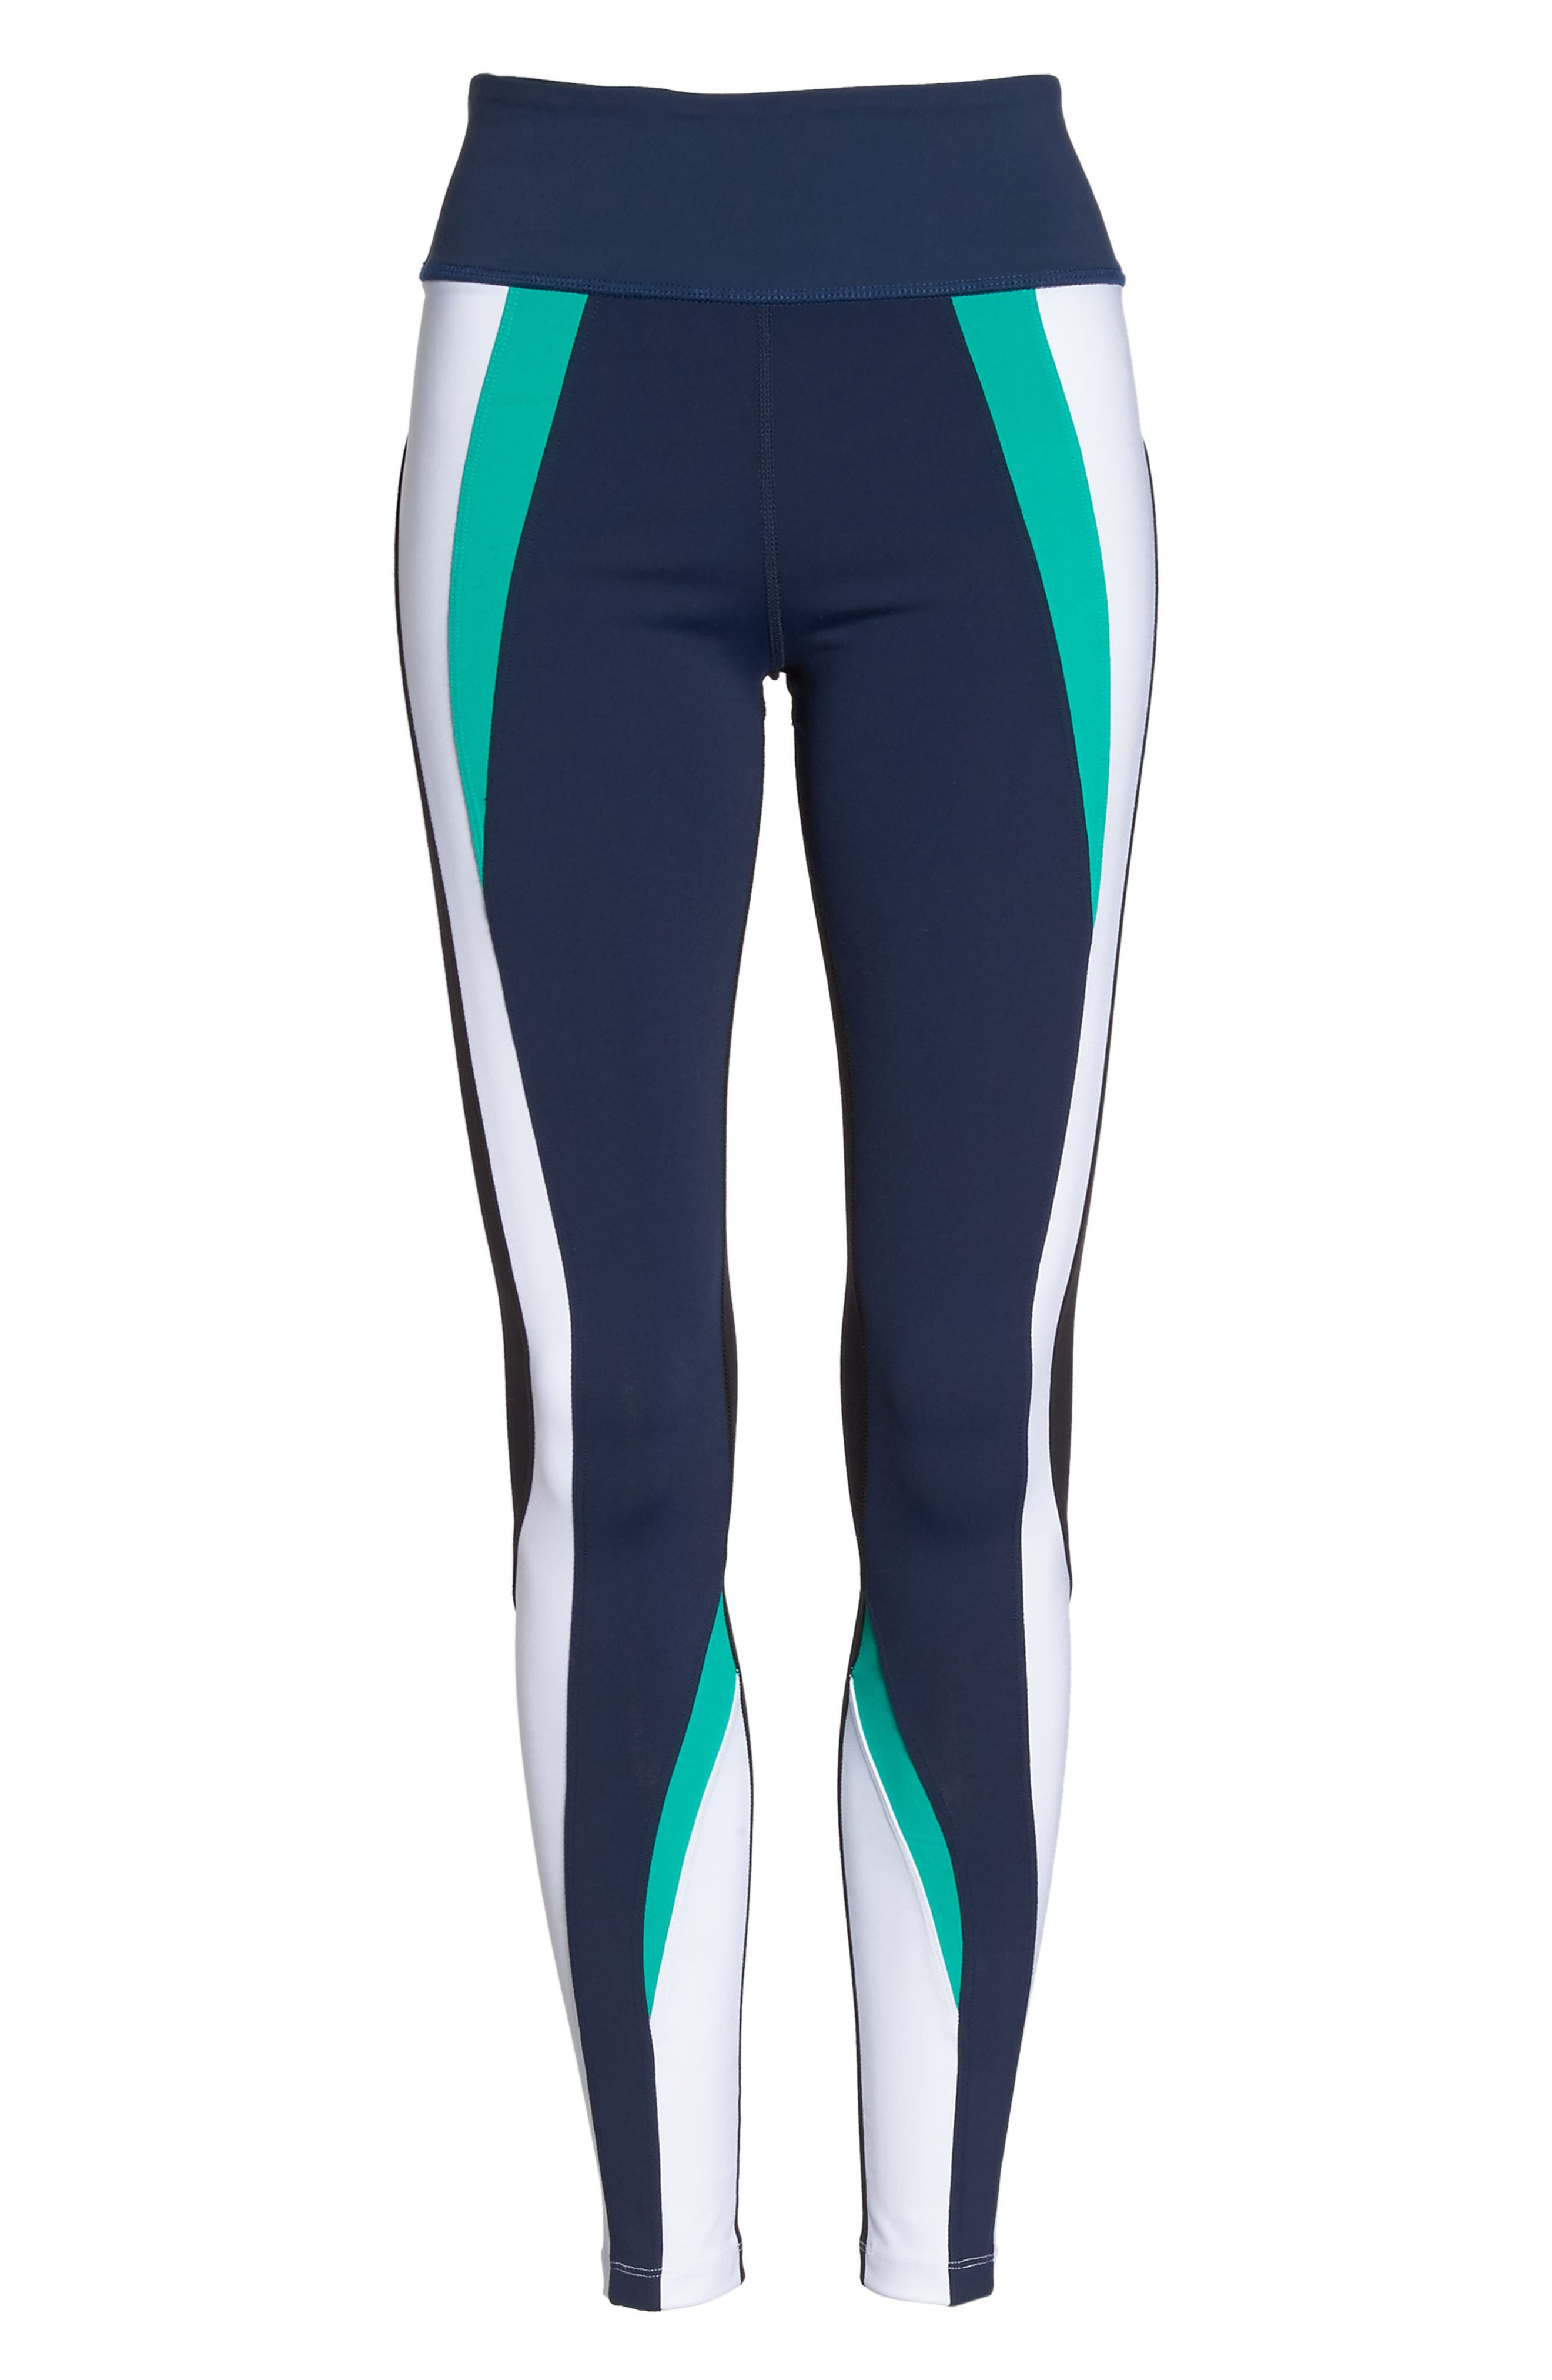 Force Ankle Tights,                             Alternate thumbnail 7, color,                             Navy/ Kelly/ White/ Black